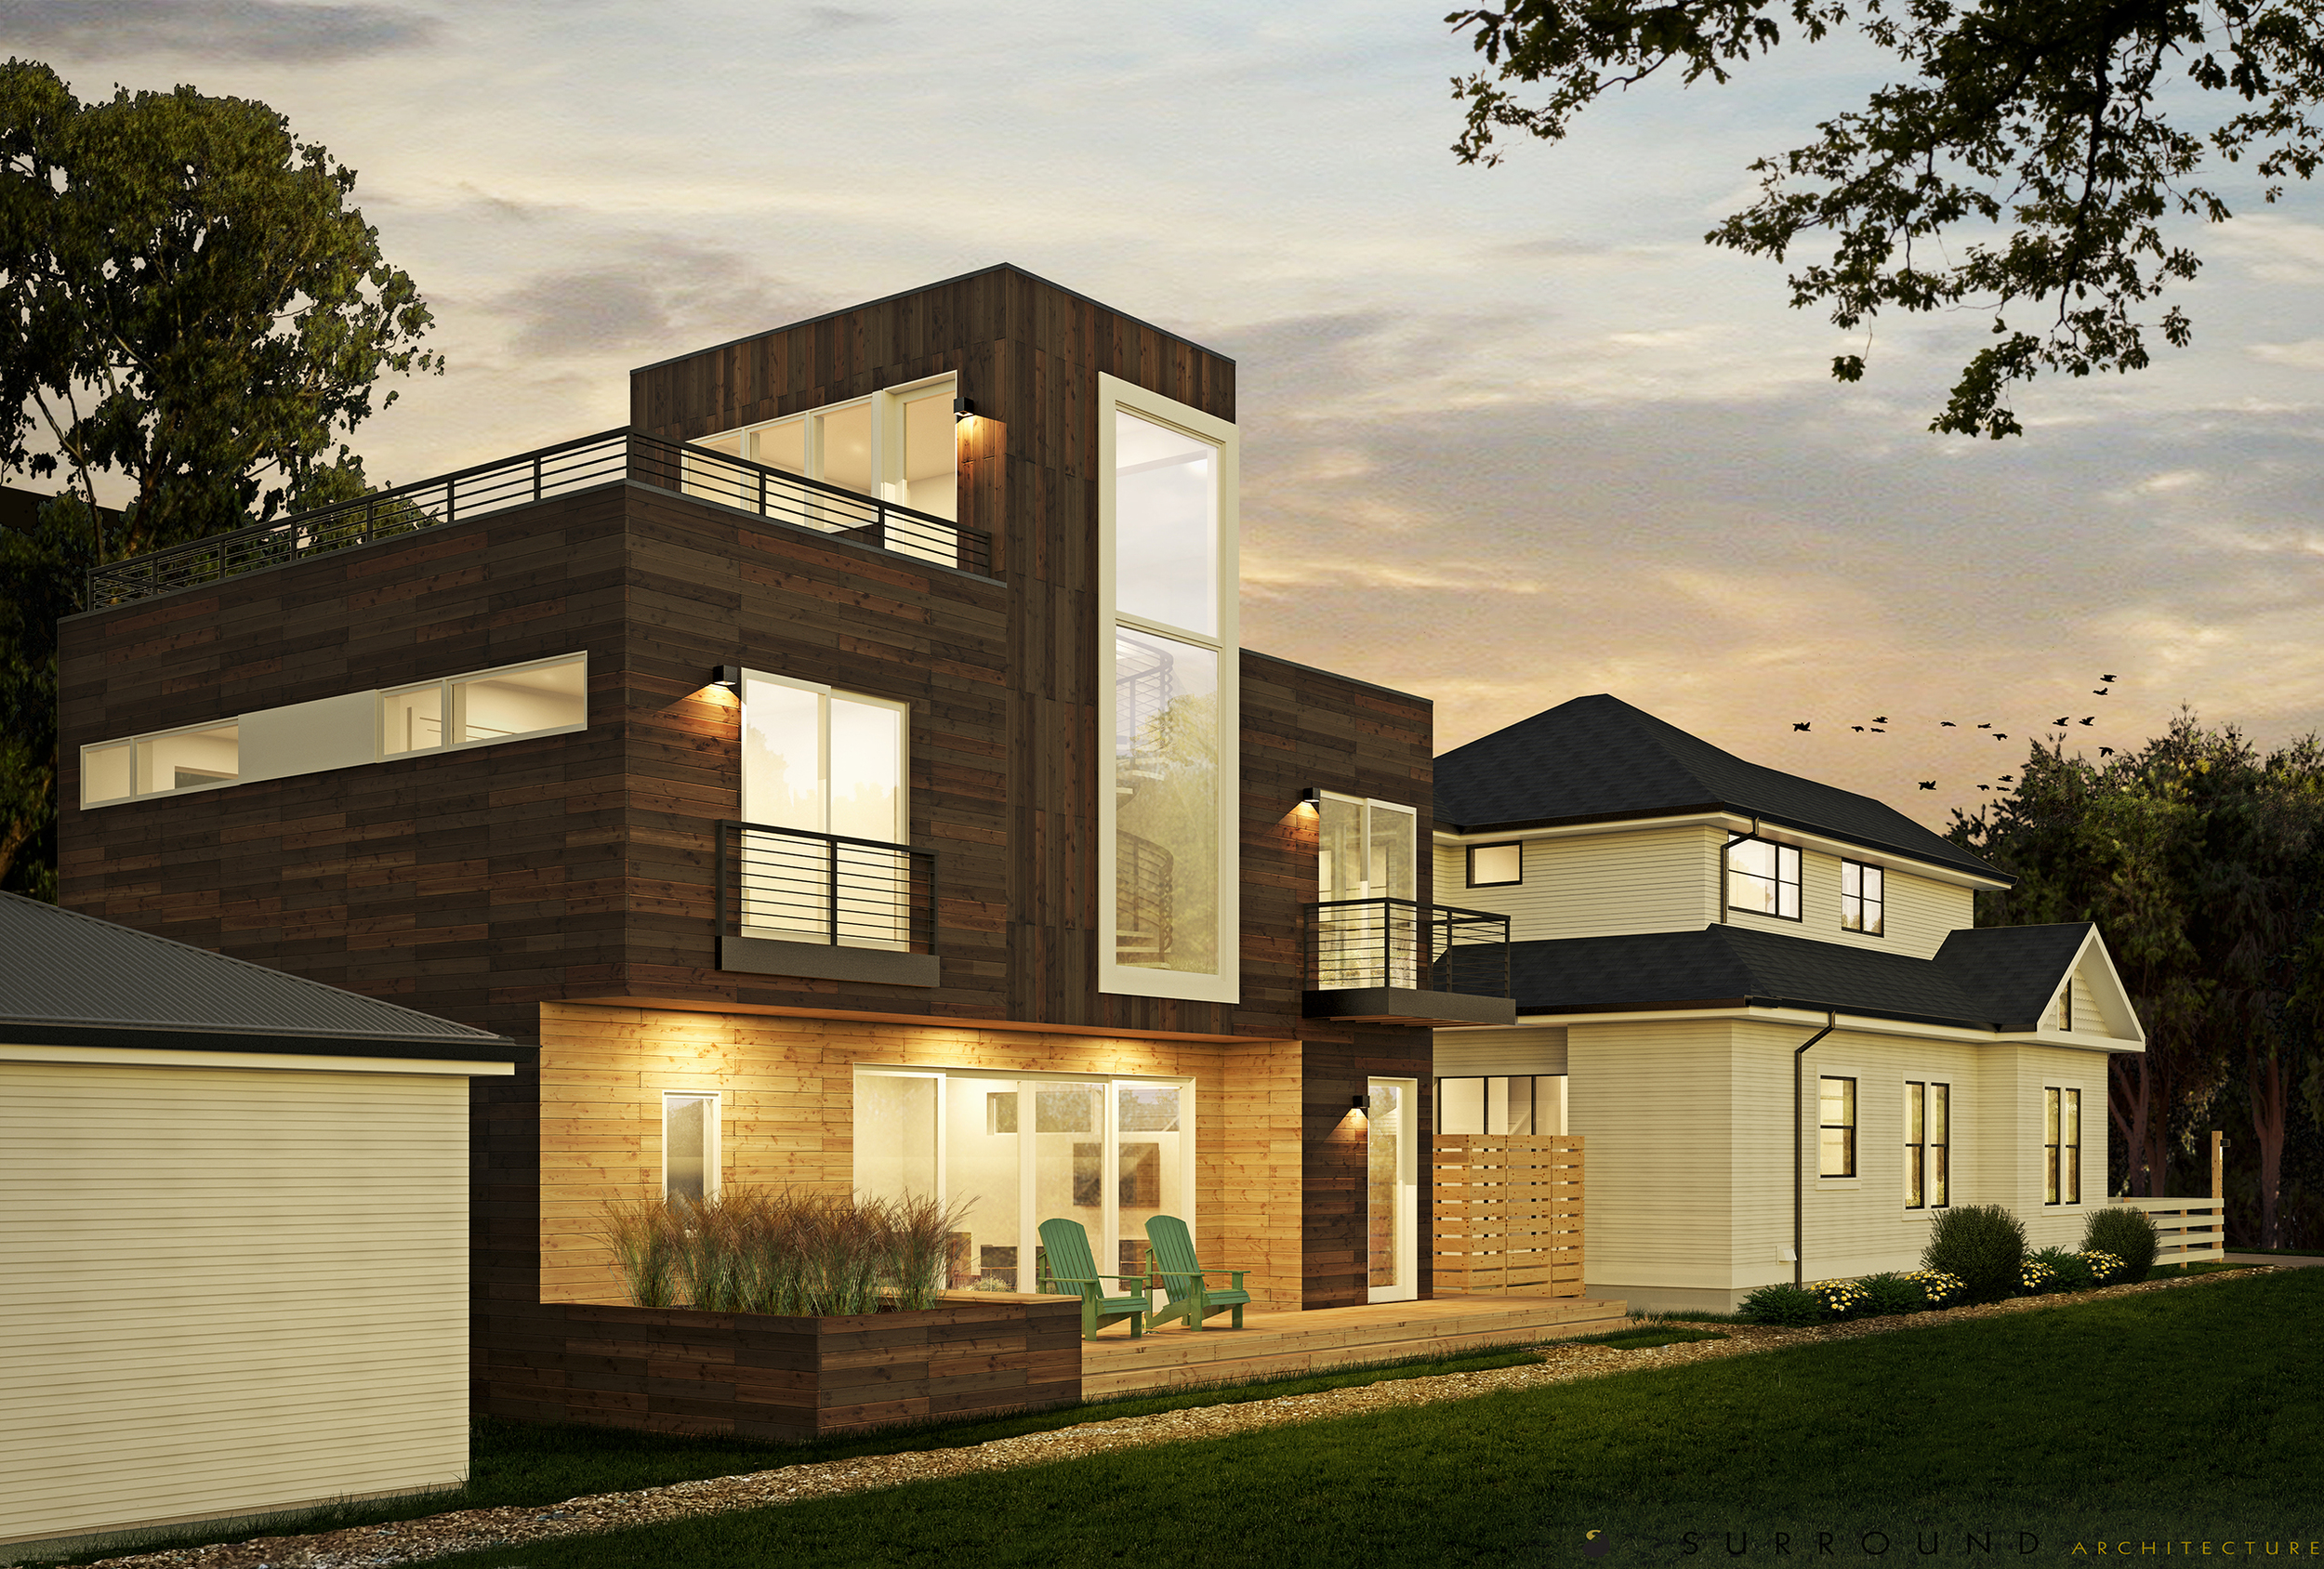 Rendering - NW View